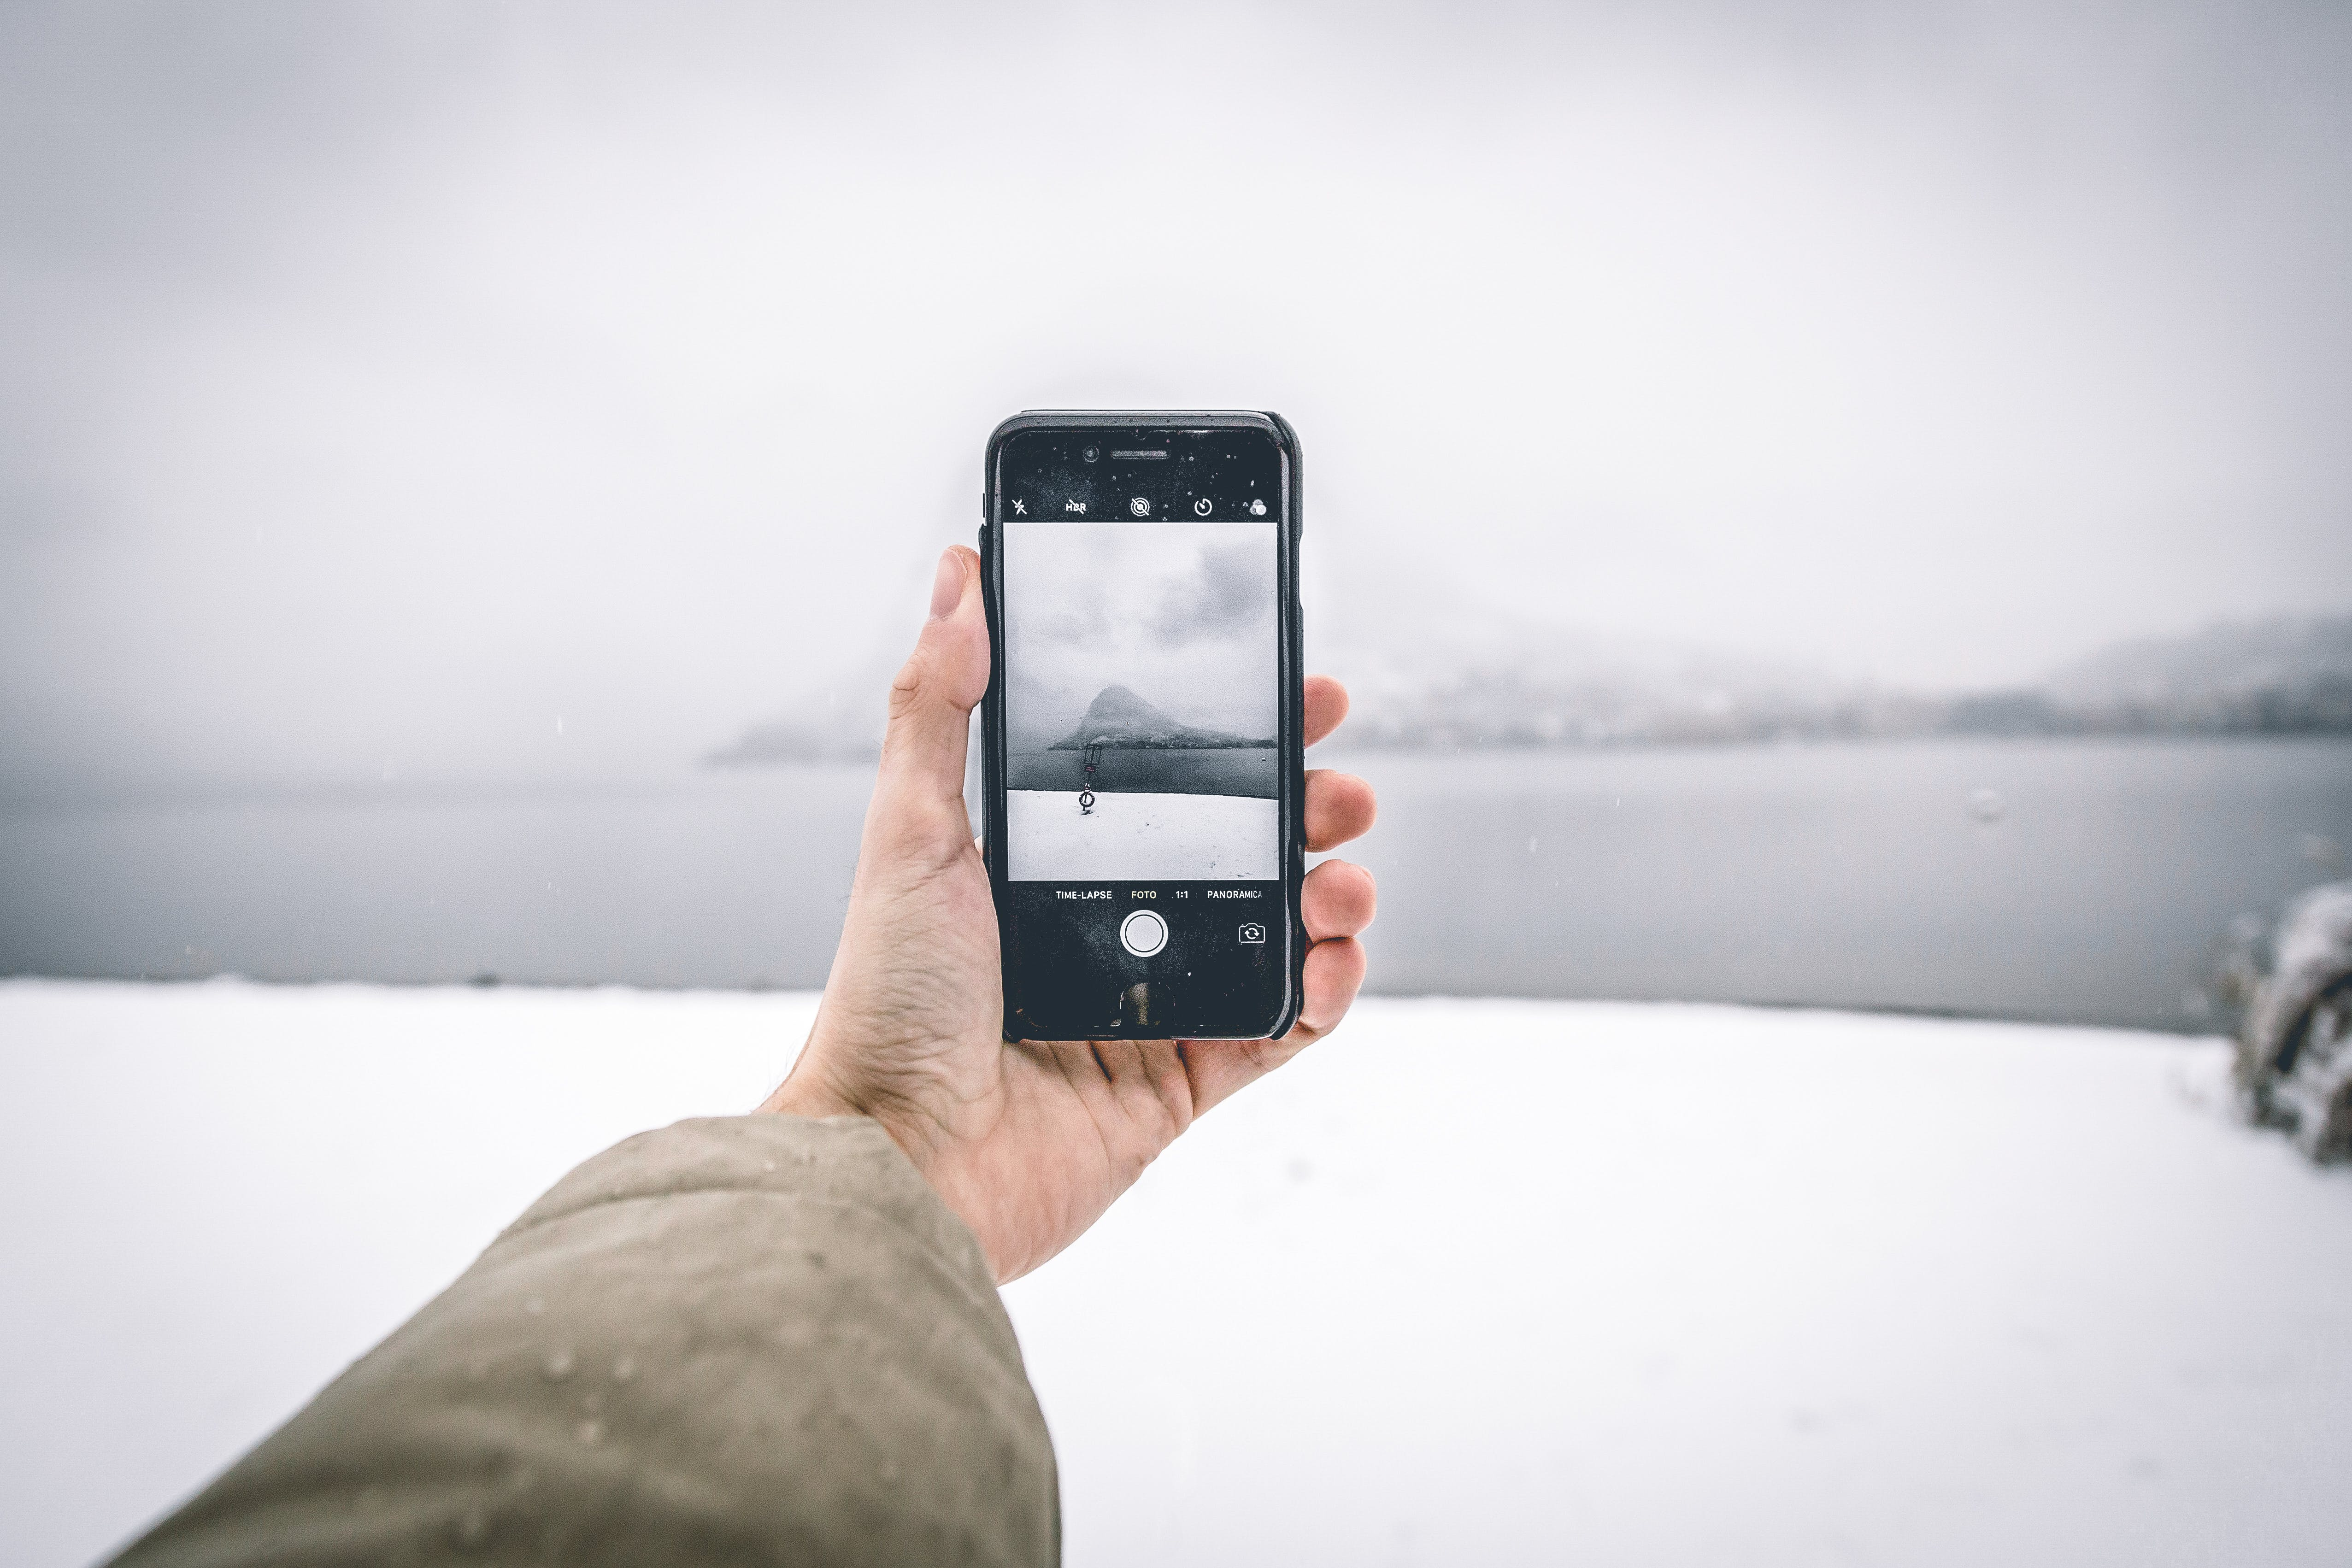 Photo of Person Wearing Brown Coat Holding Android Smartphone While Taking Picture of Mountain and Body of Water